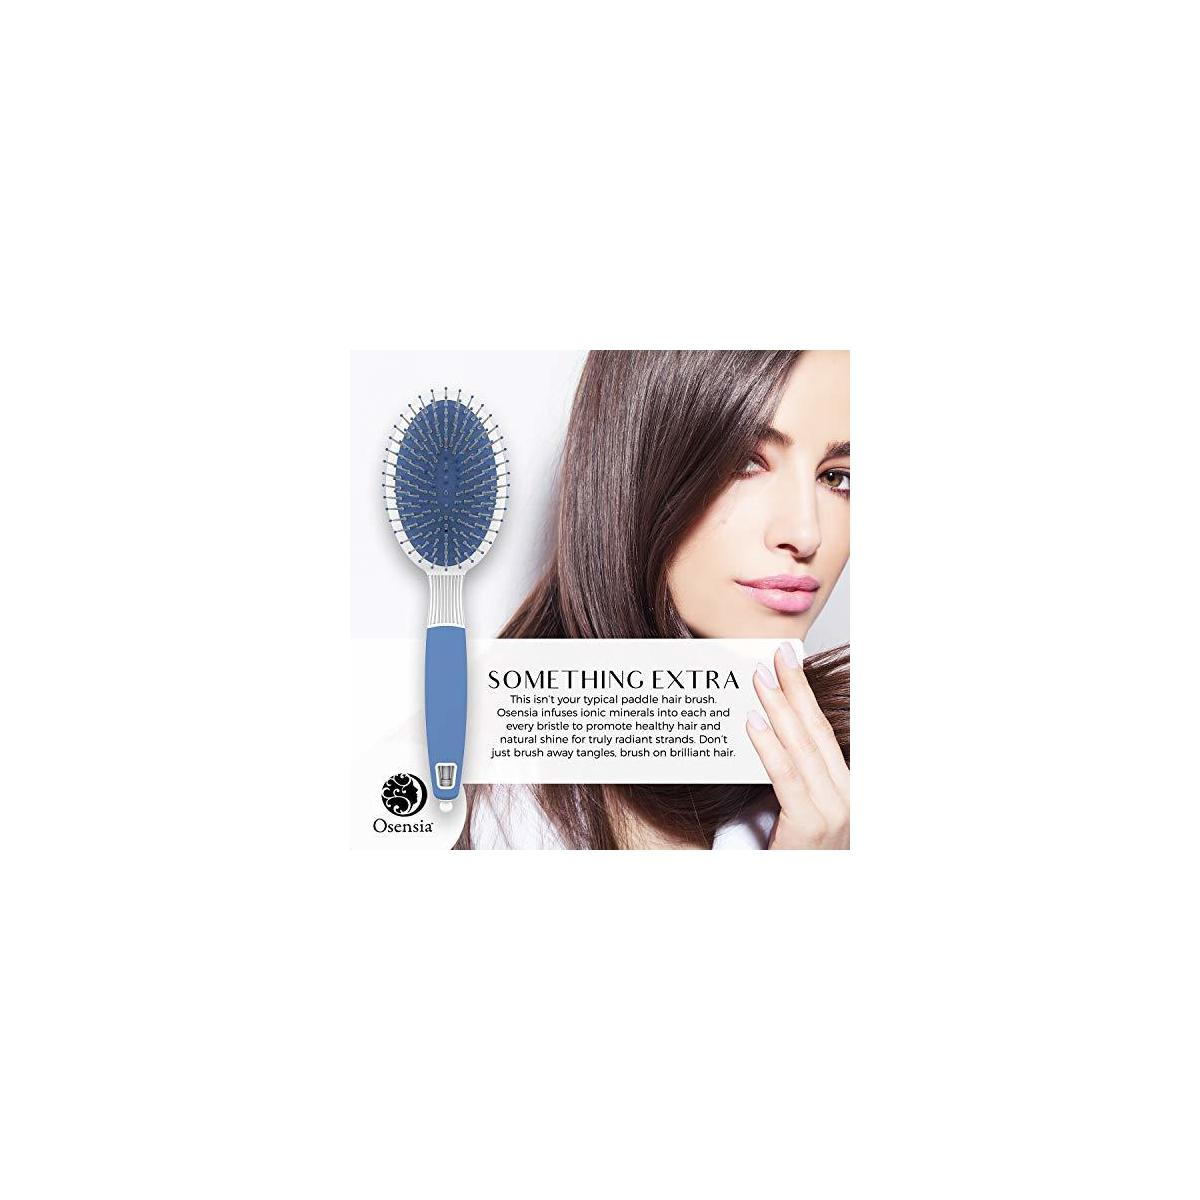 Oval Paddle Hair Brush - Gentle Detangler Brush for Thick Hair with Ionic Mineral Nylon Bristles - Antistatic Detangling Brush for Blow-Drying and Straightening Curly Hair by Osensia